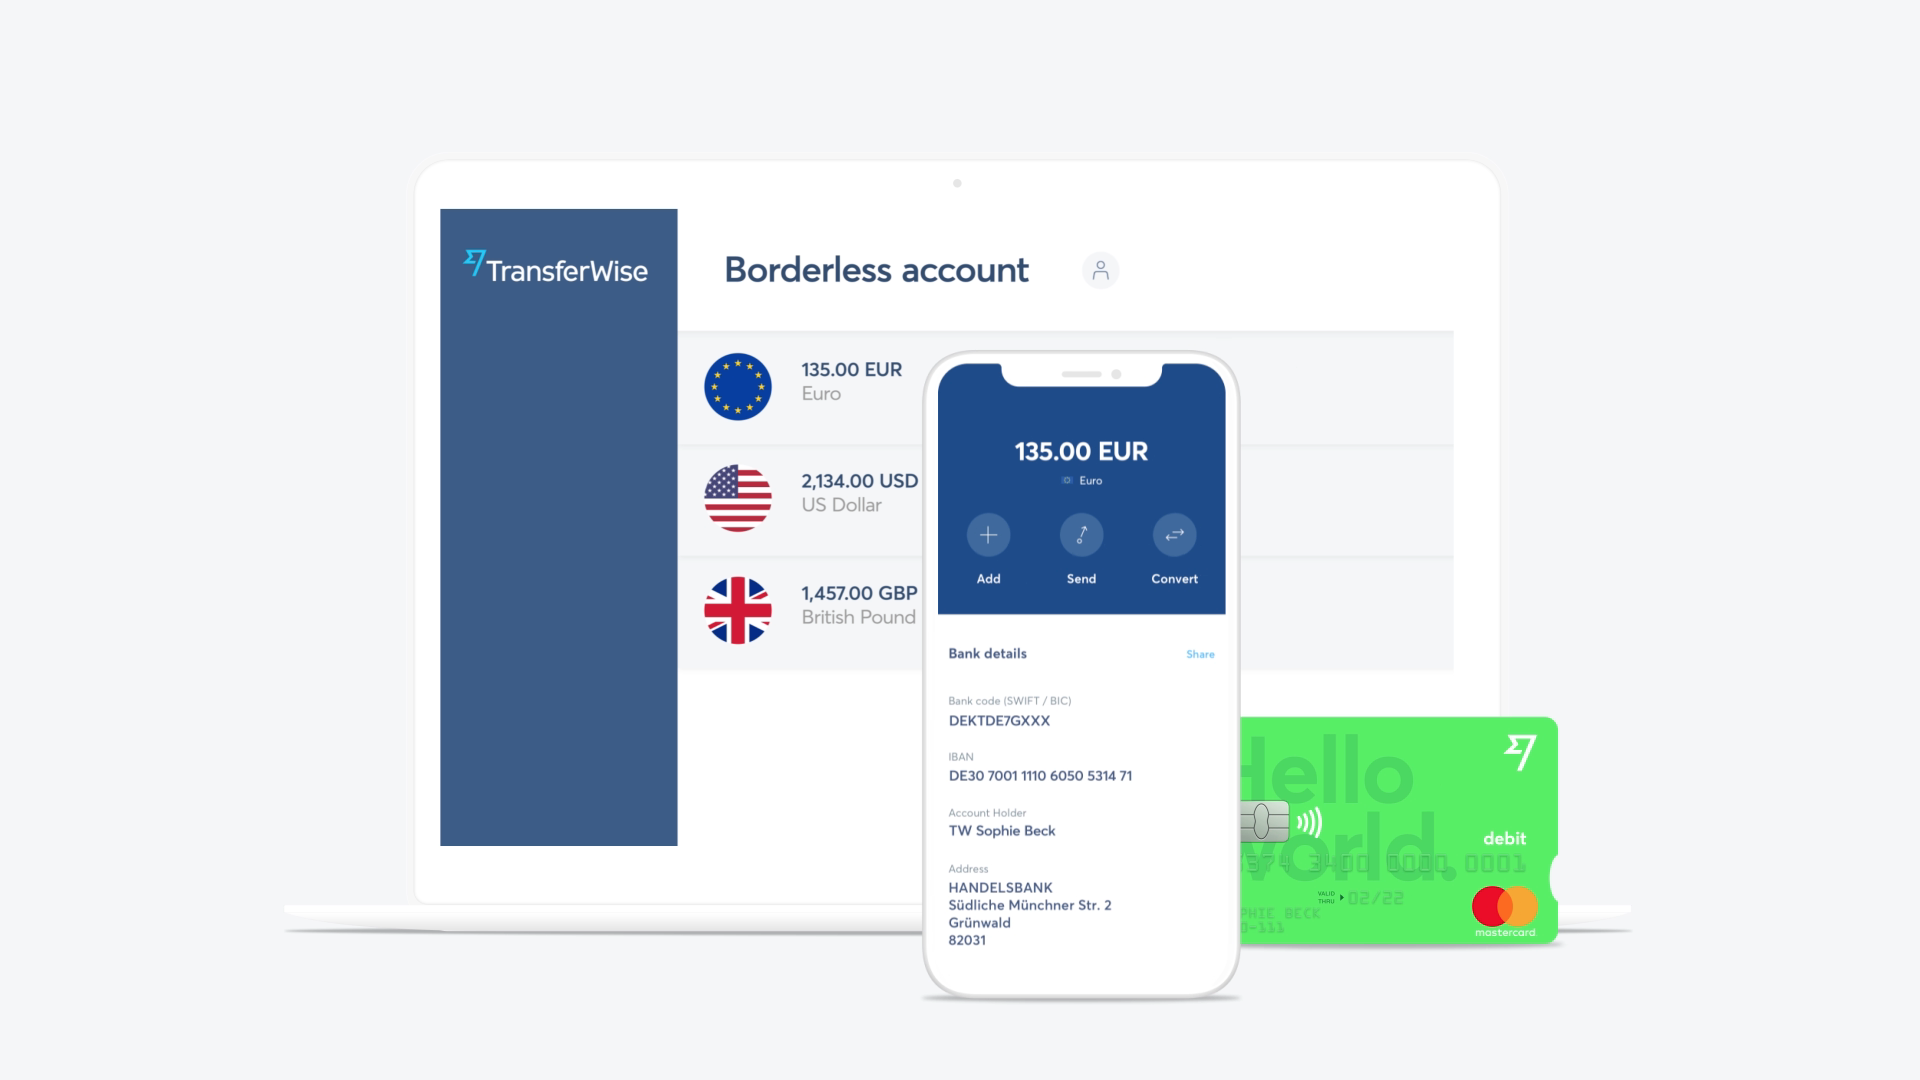 Then, a multi-currency account and debit card.